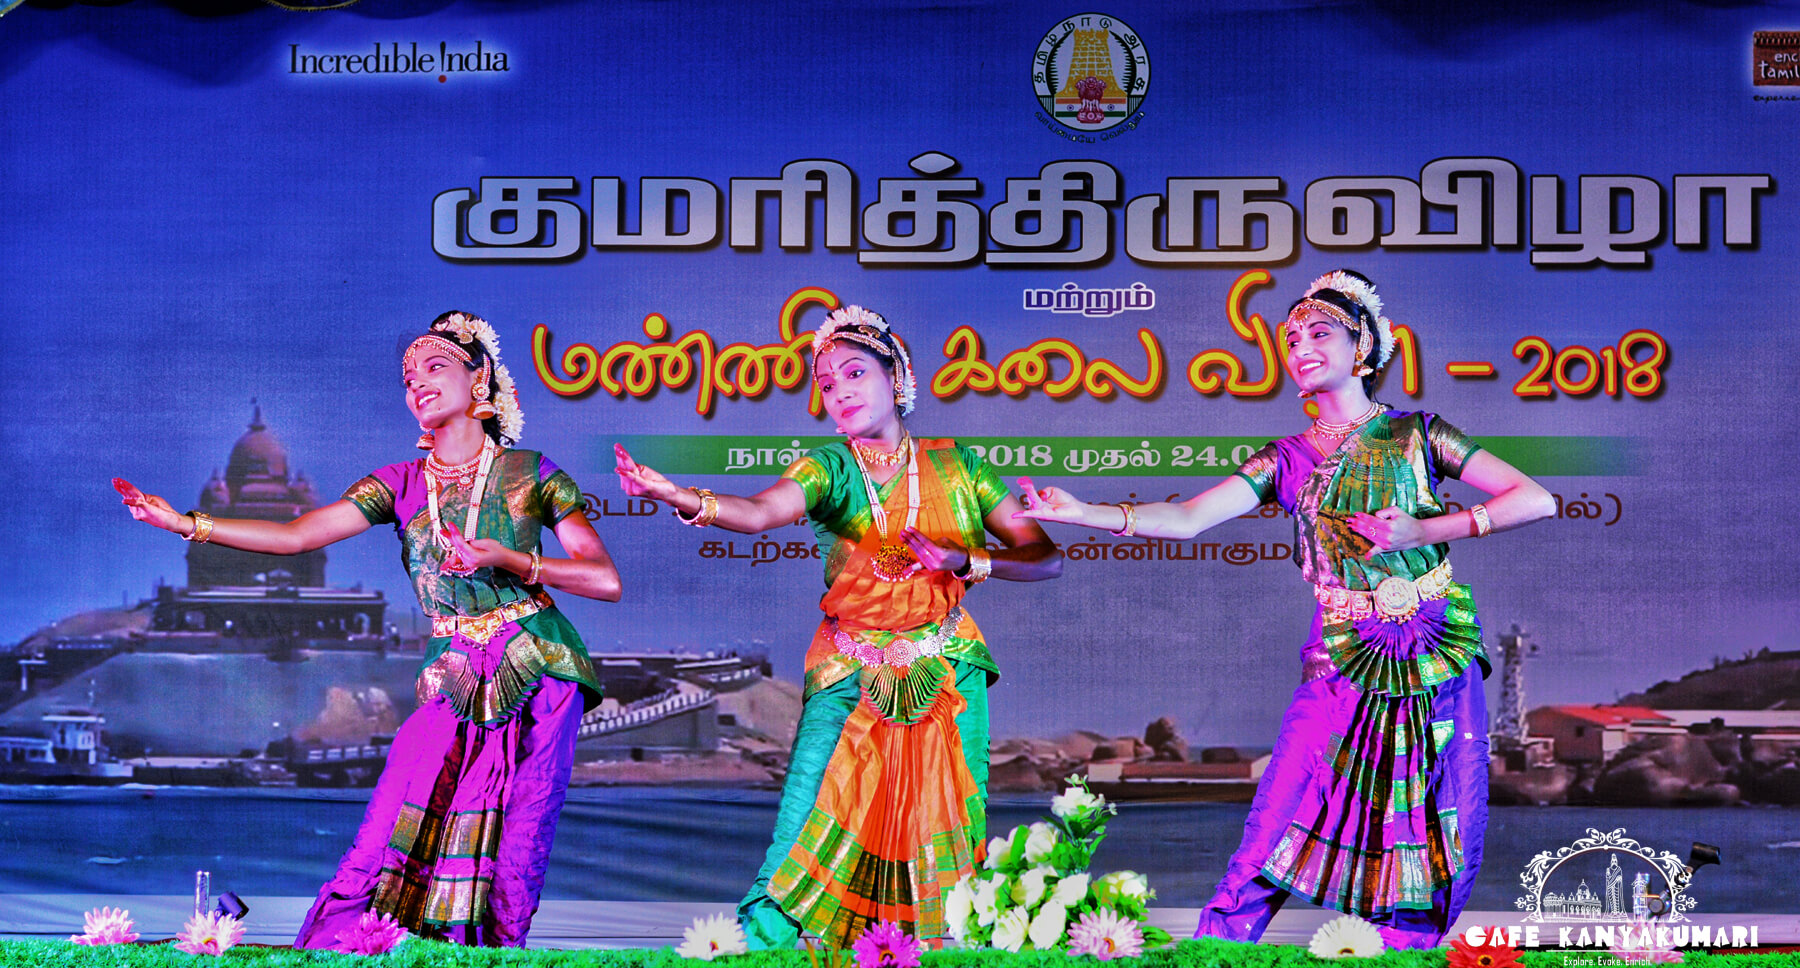 Kanyakumari excluded from its own Mannin Kalaivilaa. TTDC Festival turns into a Farce